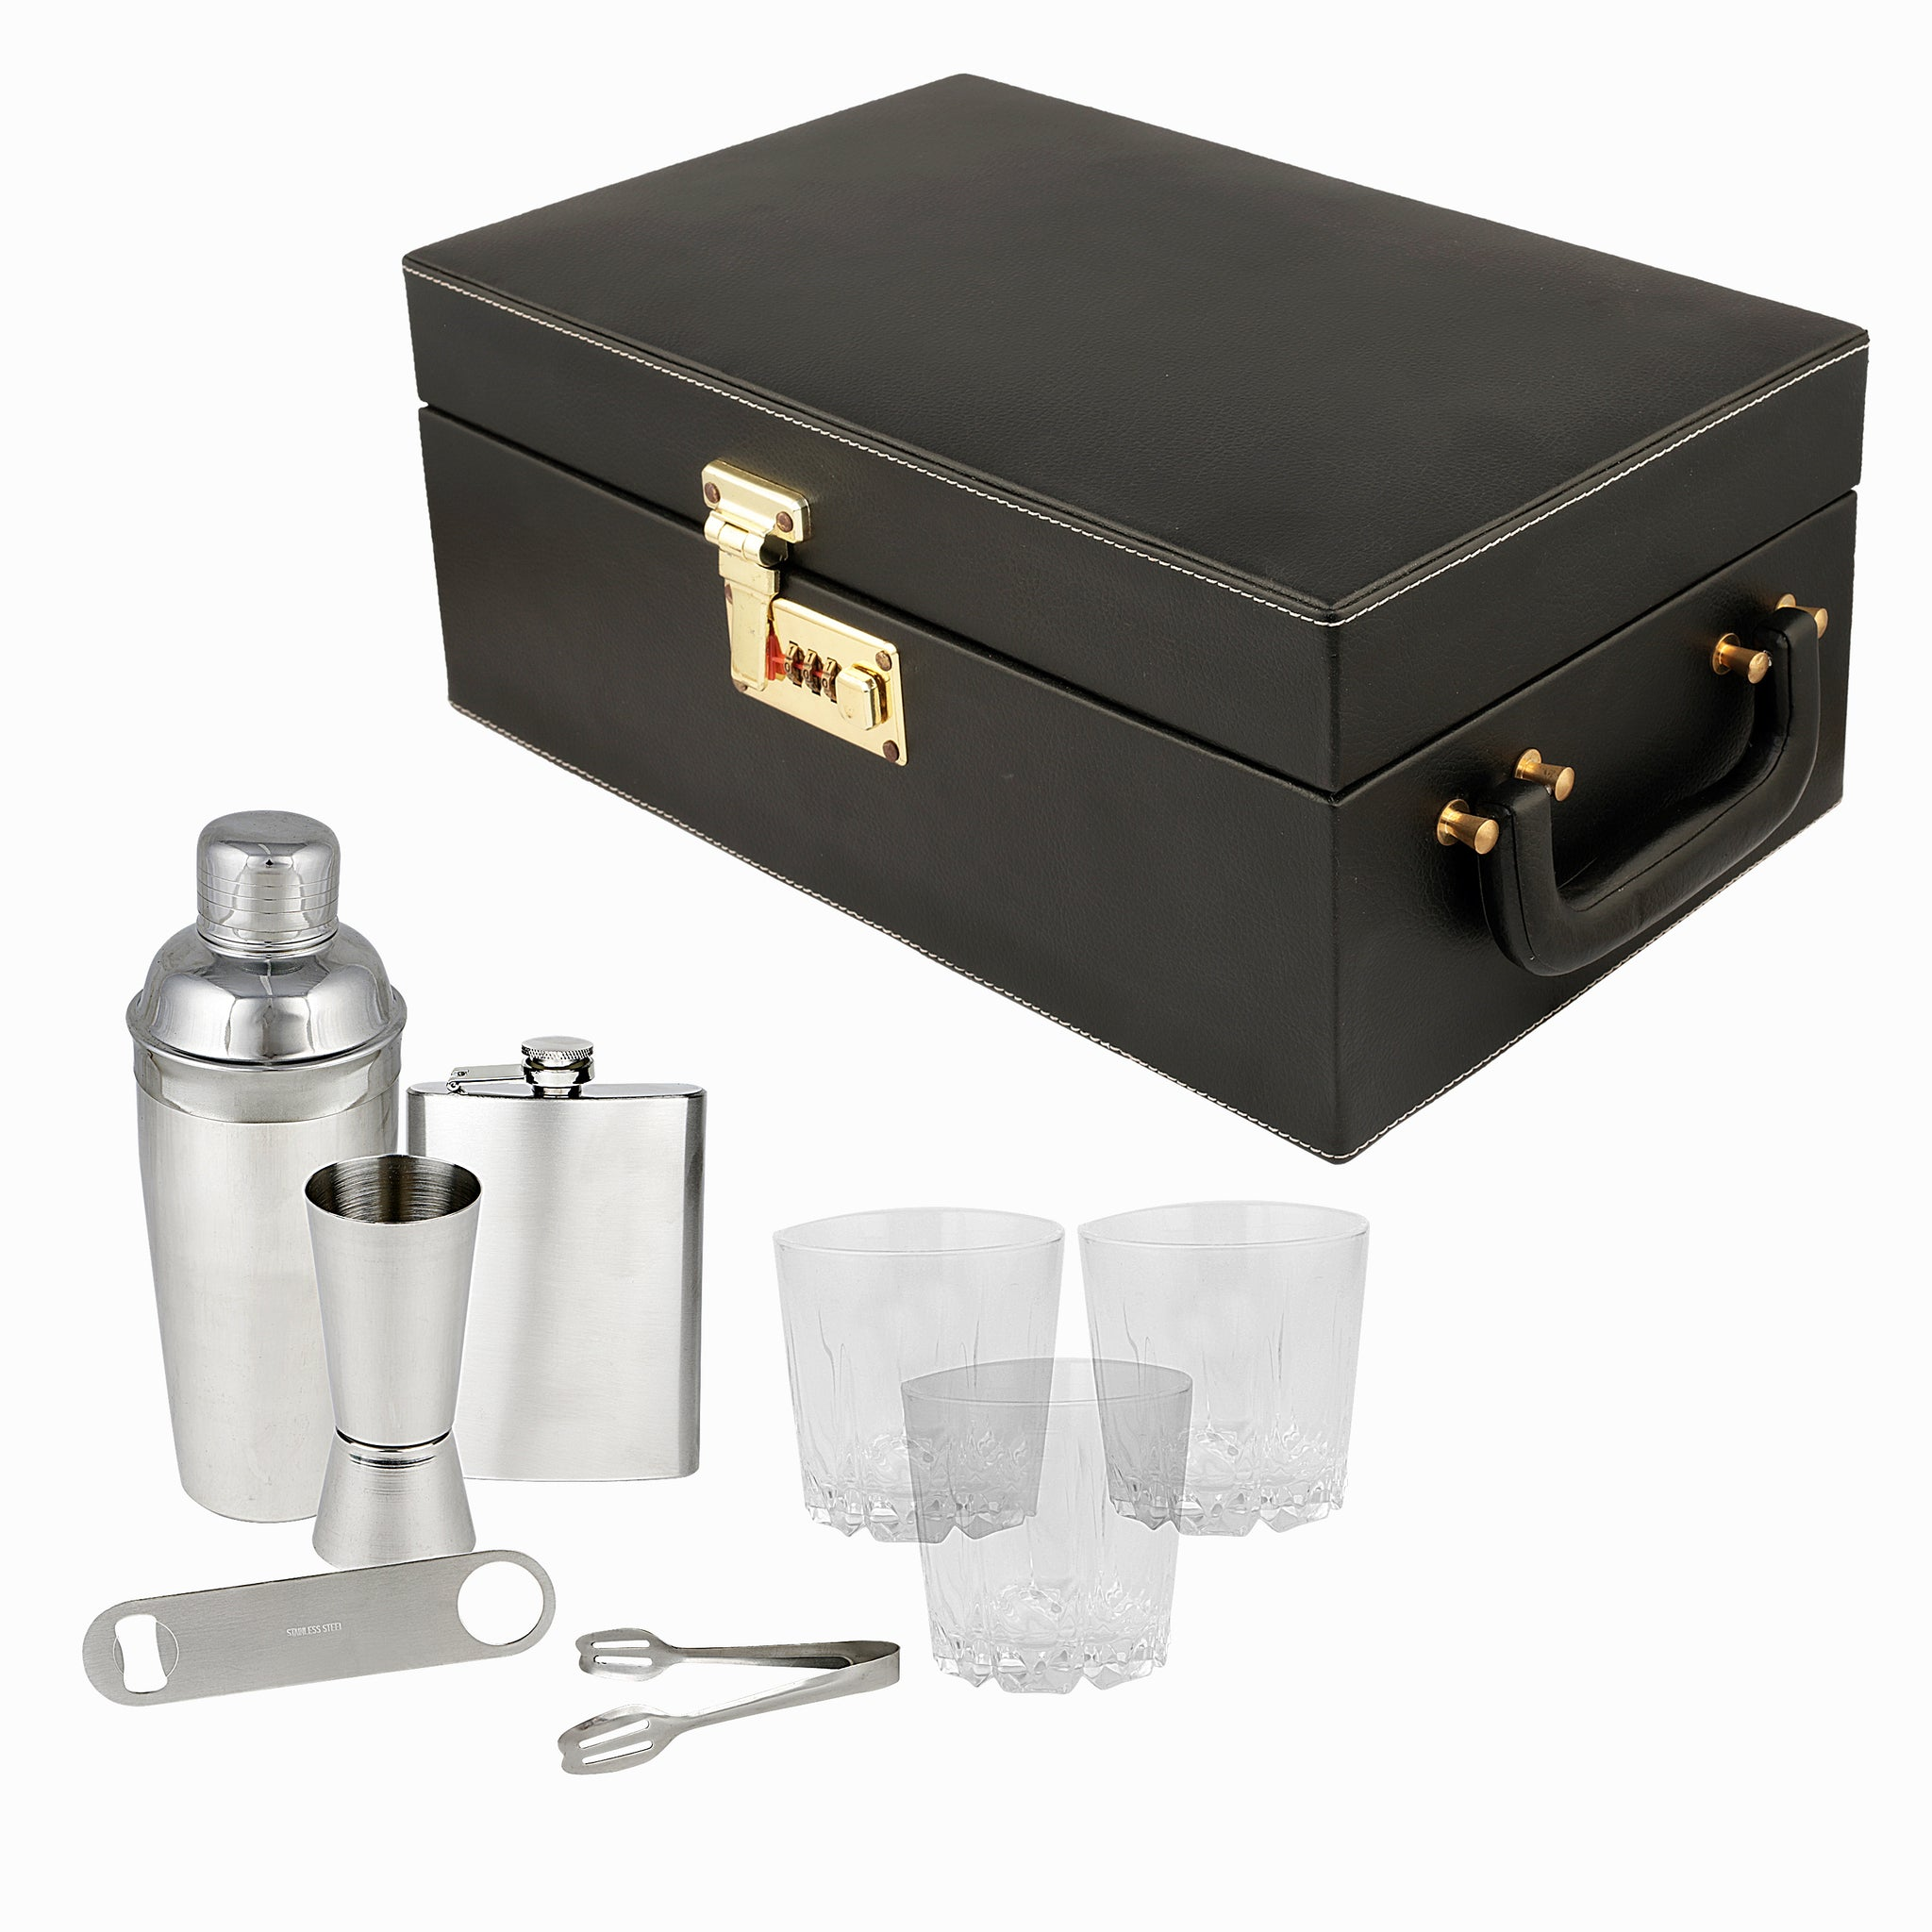 Anything & Everything Portable Cocktail Bar Accessories Set | Portable Cocktail Bar Set | Travel Bar Set | Portable Leatherette Bar Set | Wine Case | Whisky Case - Black & Black (Holds 03 Whisky Glasses)